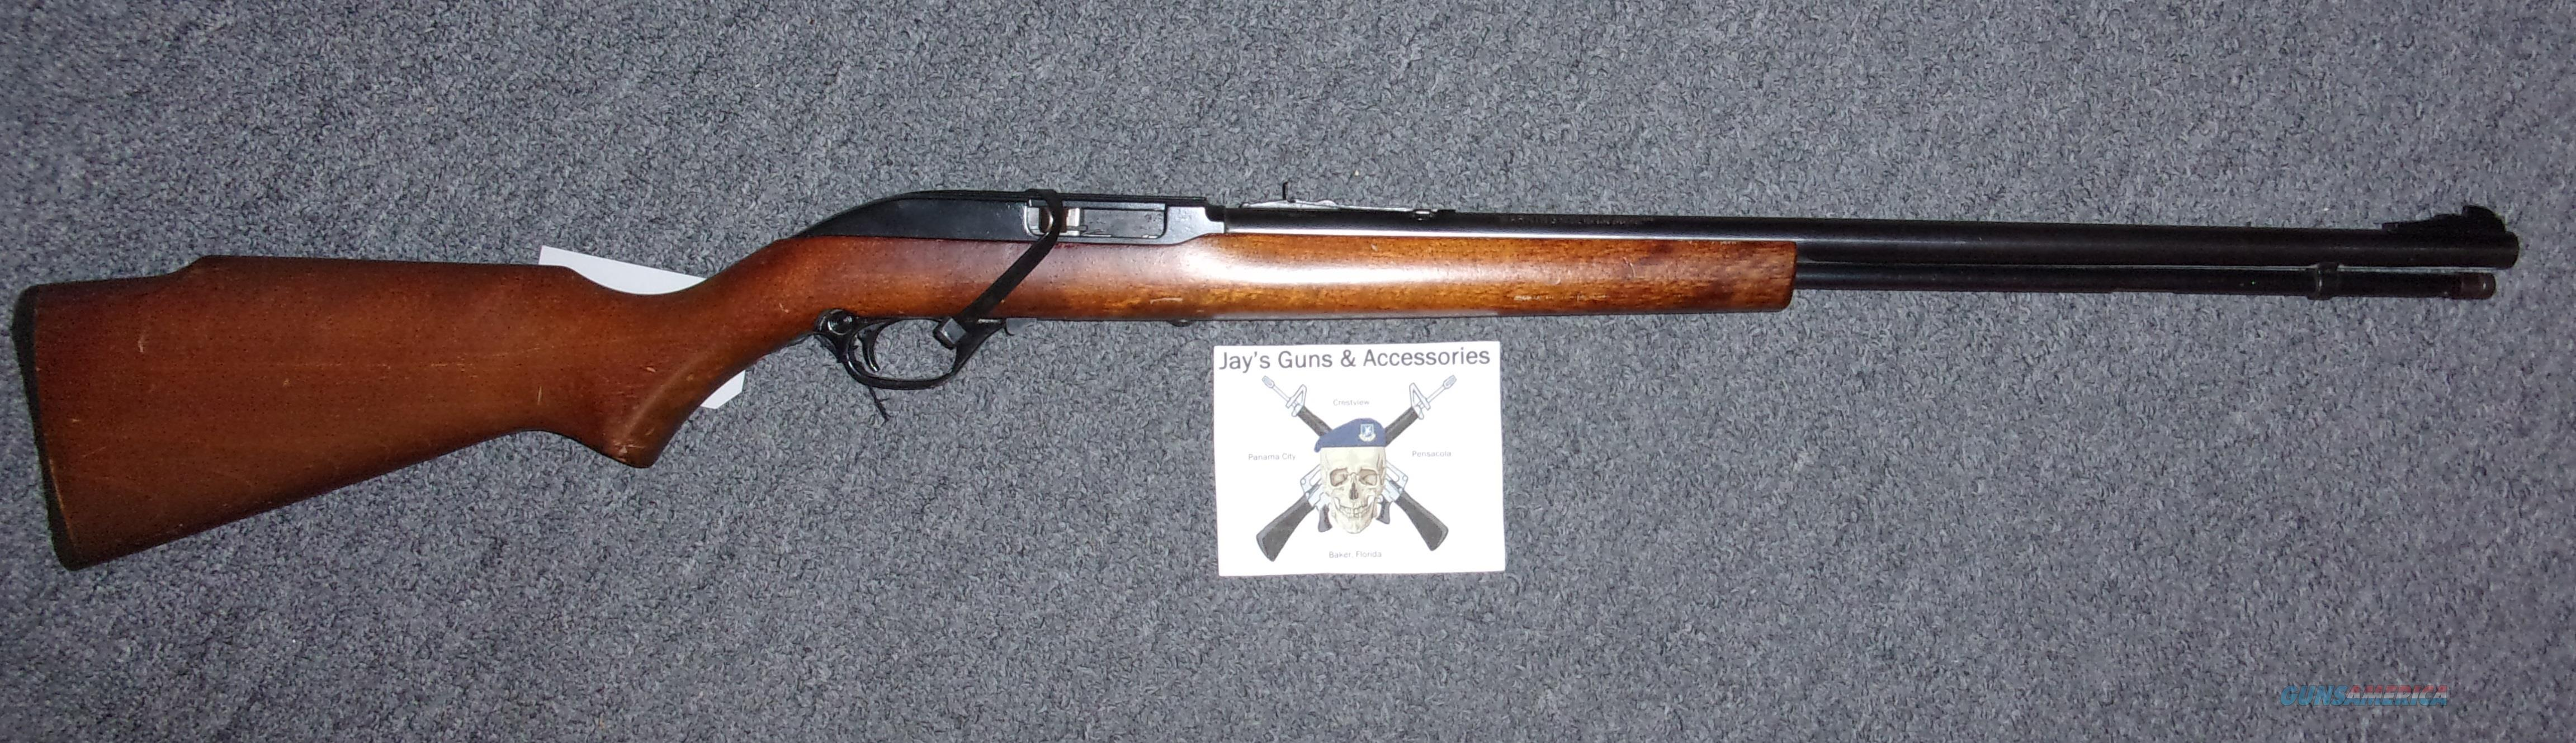 Marlin 60  Guns > Rifles > Marlin Rifles > Modern > Semi-auto